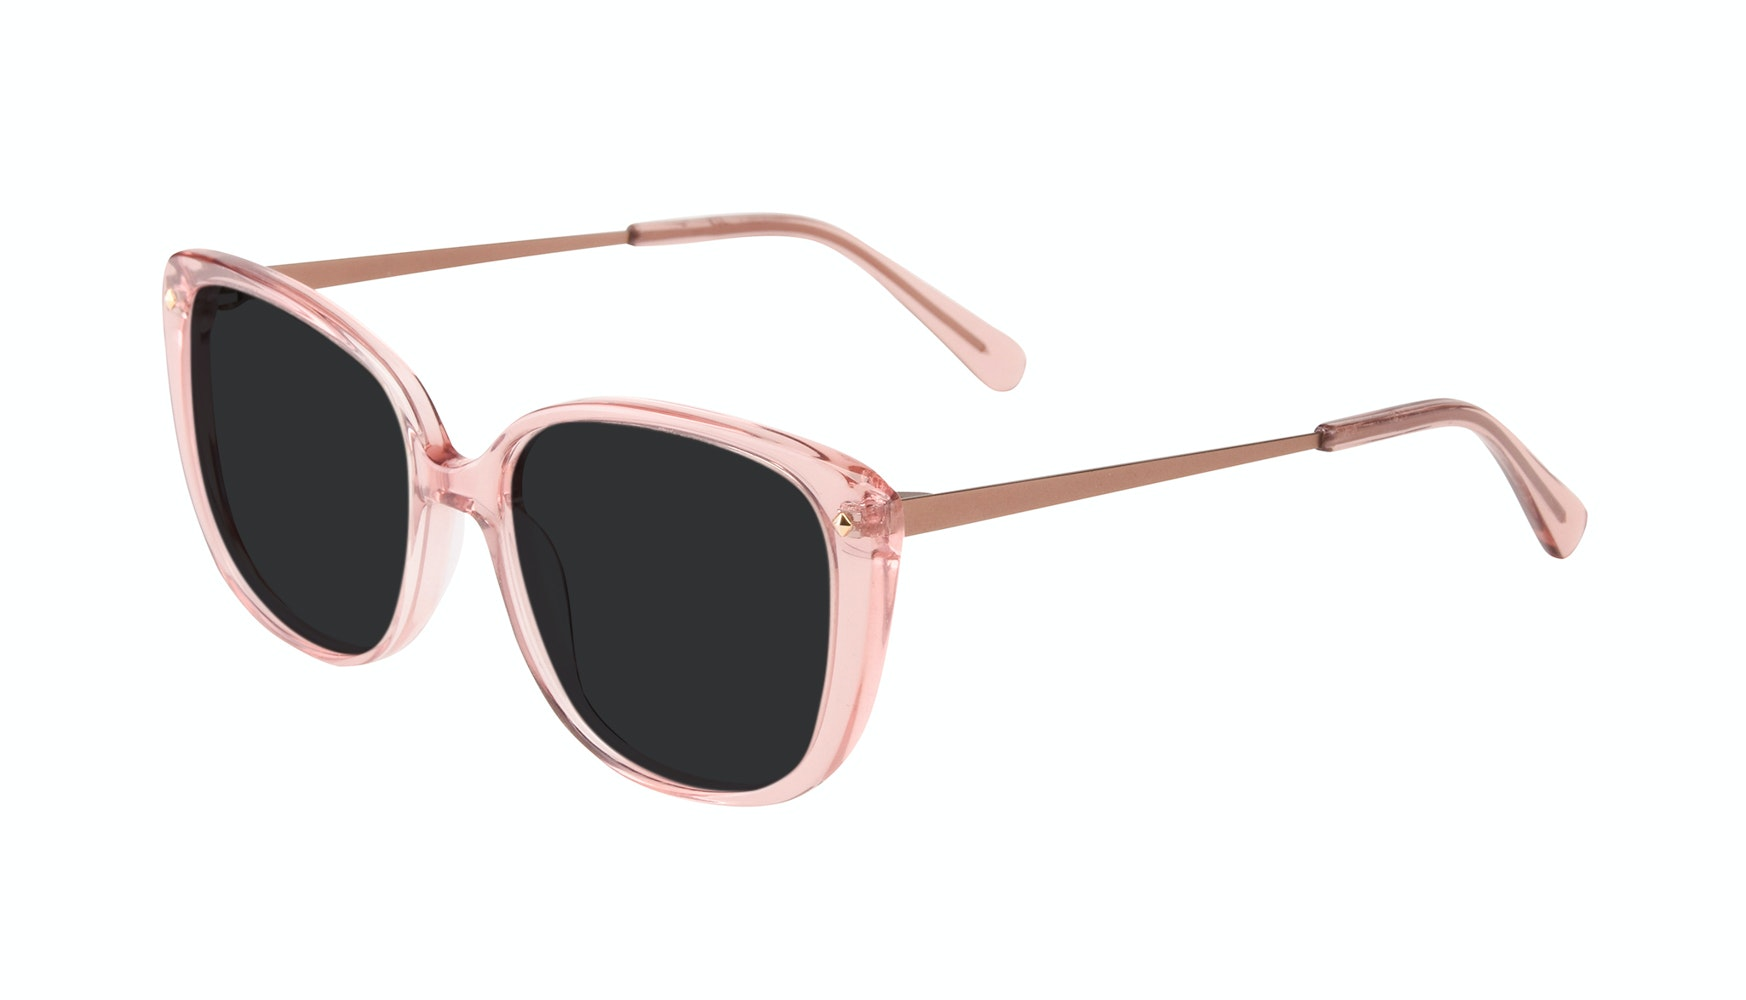 Affordable Fashion Glasses Square Sunglasses Women Japonisme rose Tilt